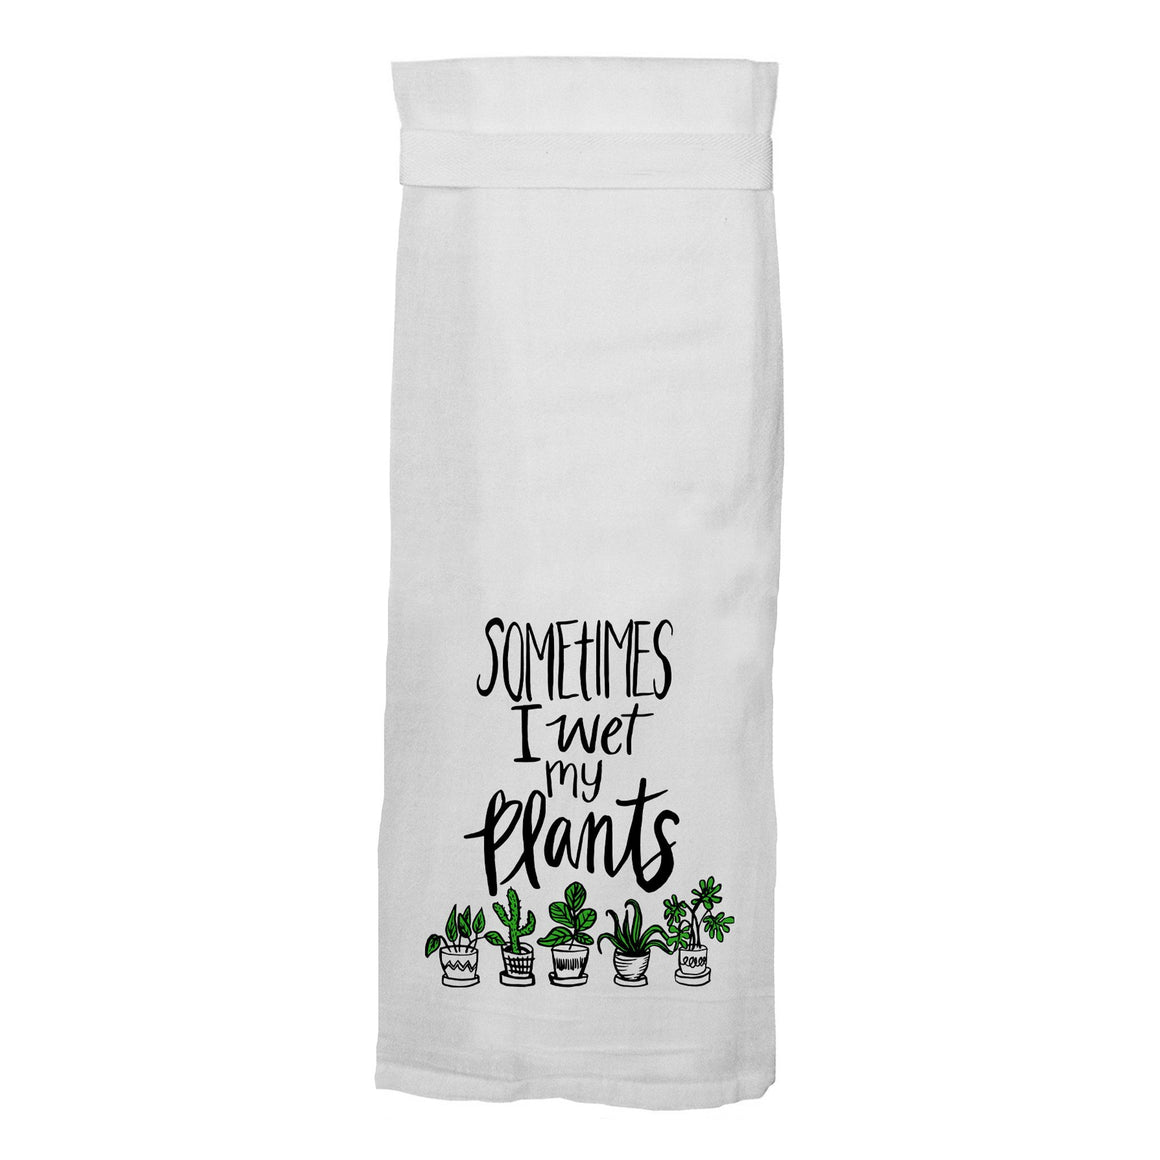 Sometimes I Wet My Plants Flour Sack Hang Tight Towel®